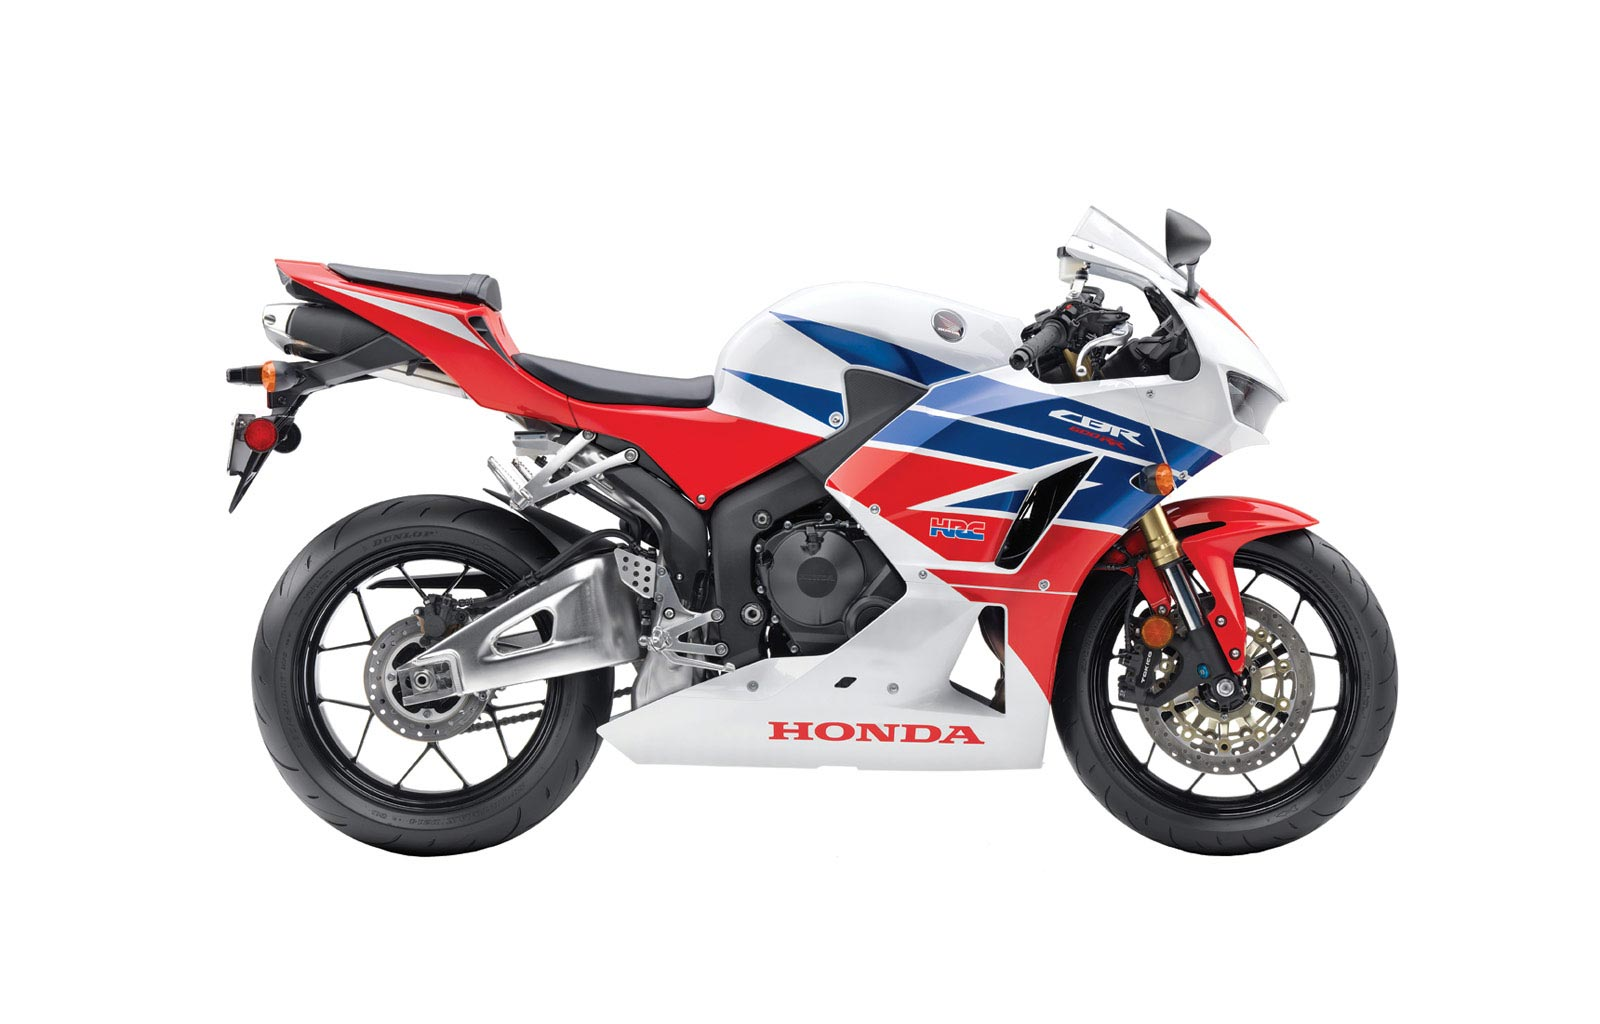 X Jpeg KB Find New Harga Honda Cbr Models And